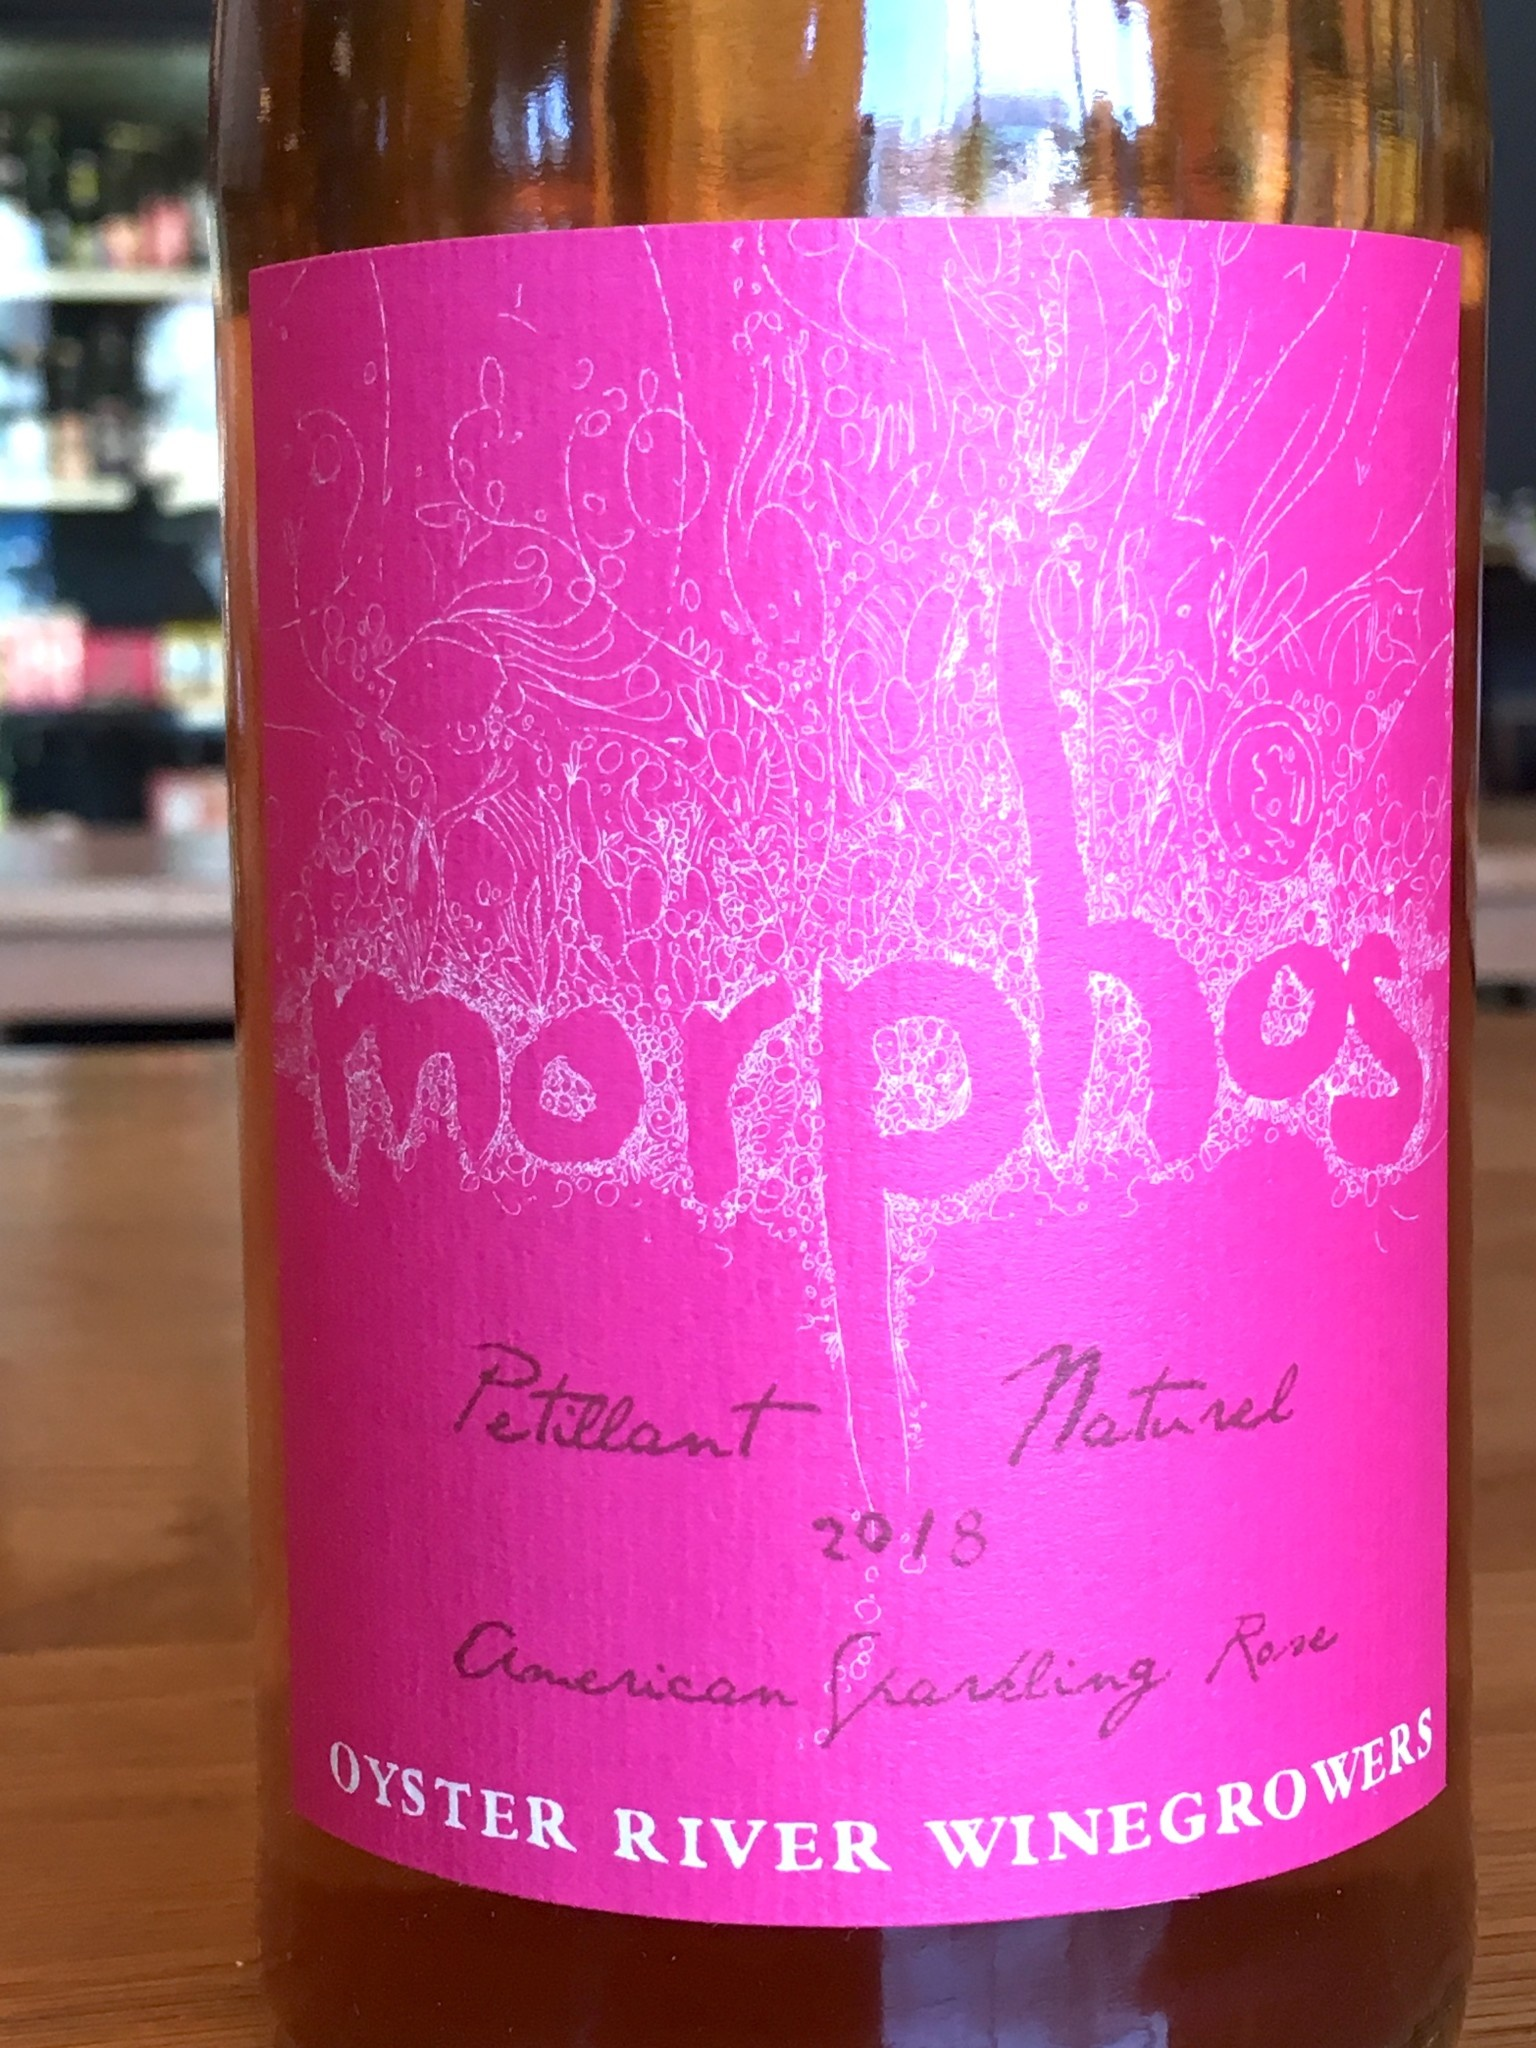 Oyster River Winegrowers 2018 Oyster River Winegrowers Morphos Pet-Nat Rose 750ml